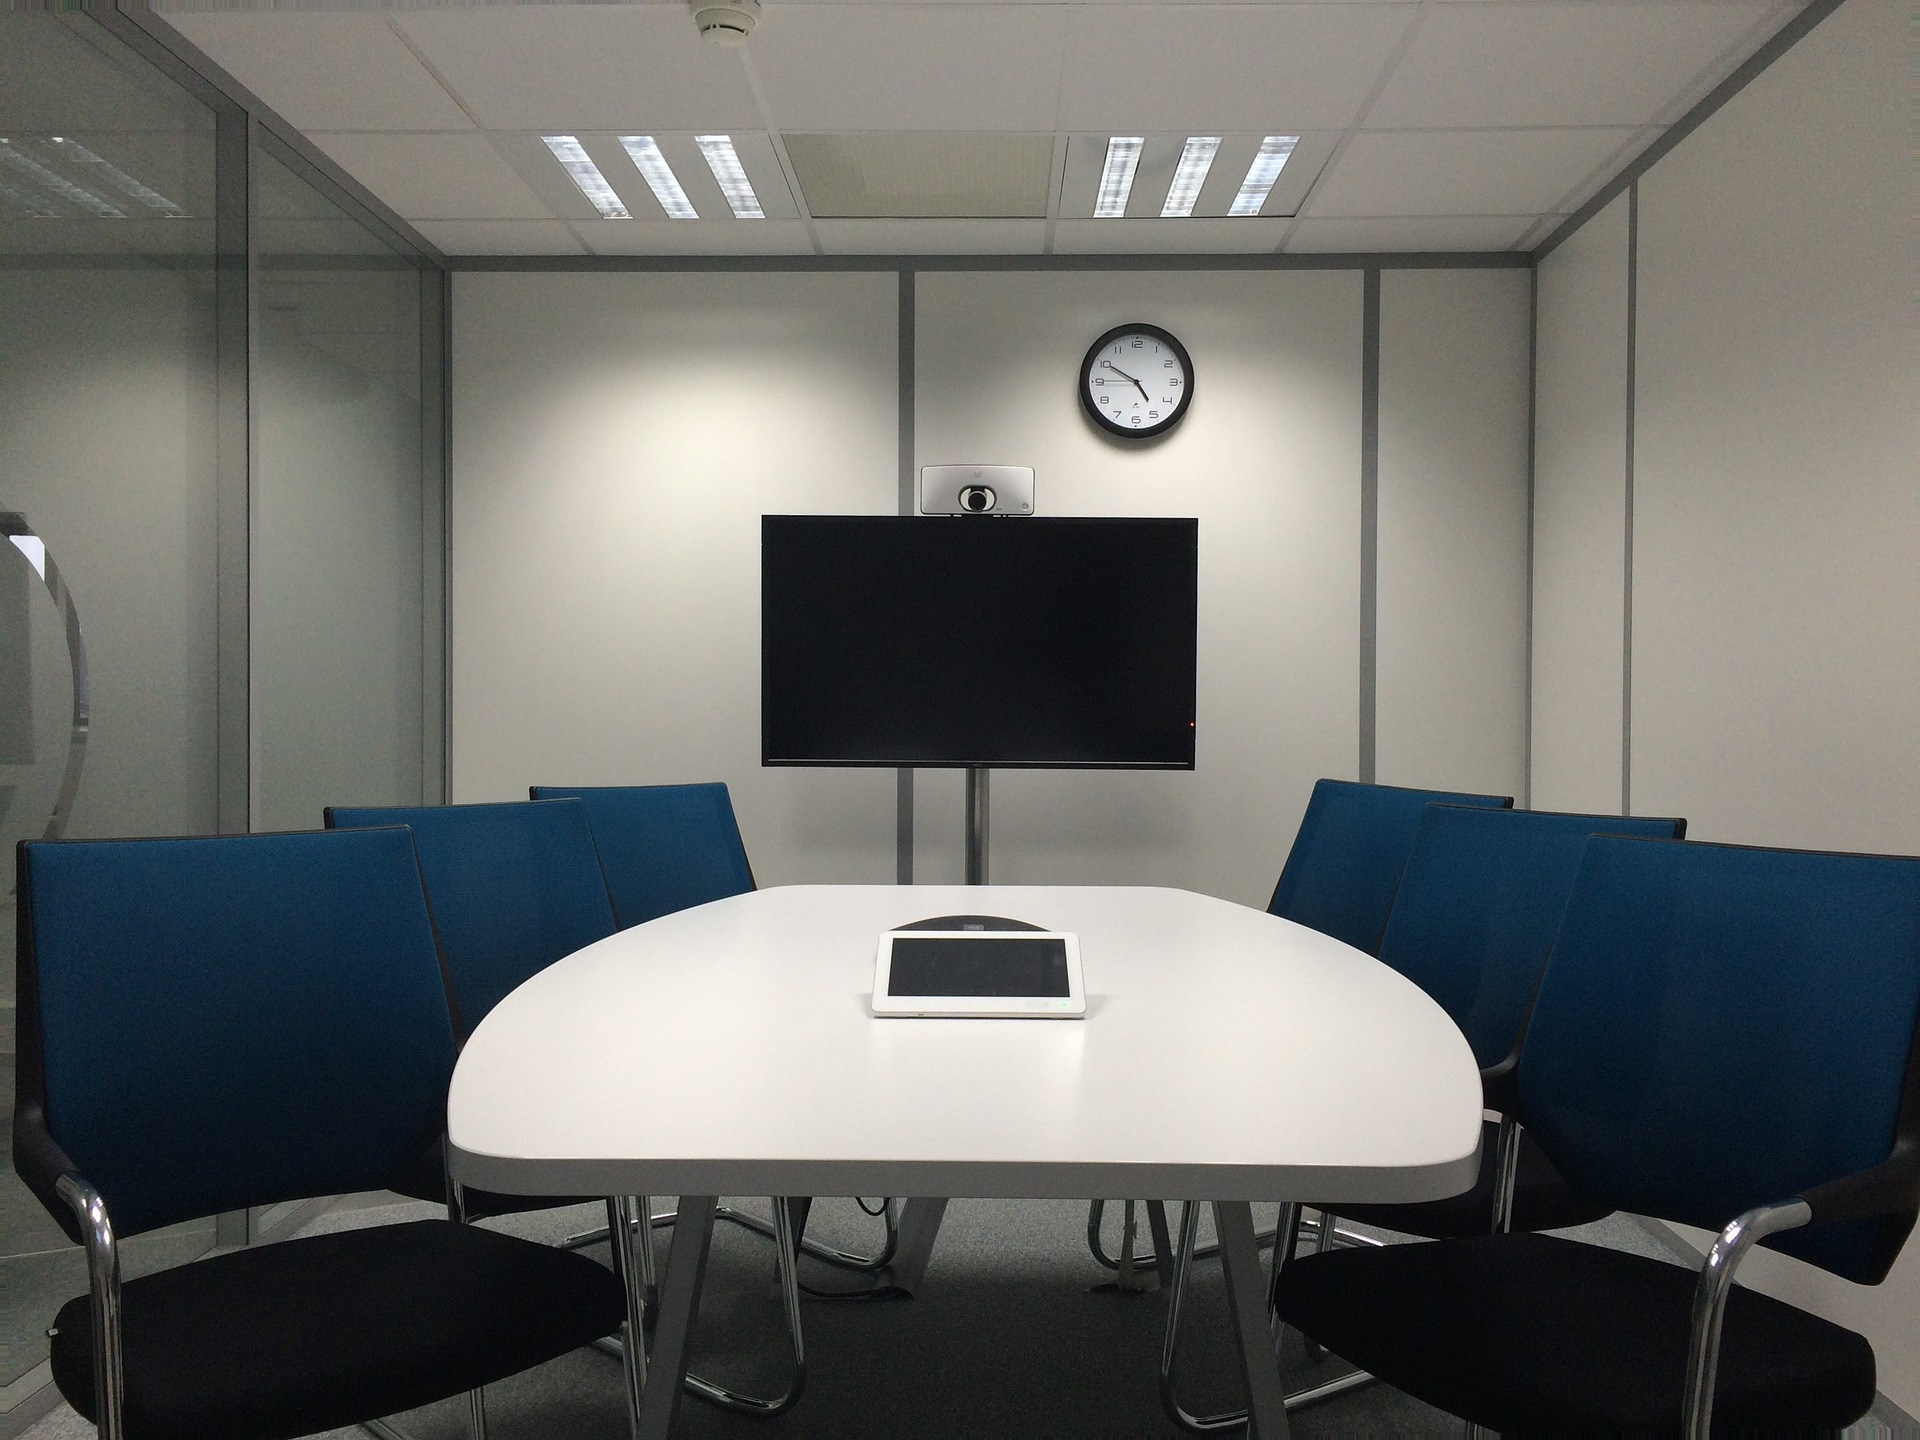 Paying attention to the design of your huddle room will help you maximize productivity even in small spaces.